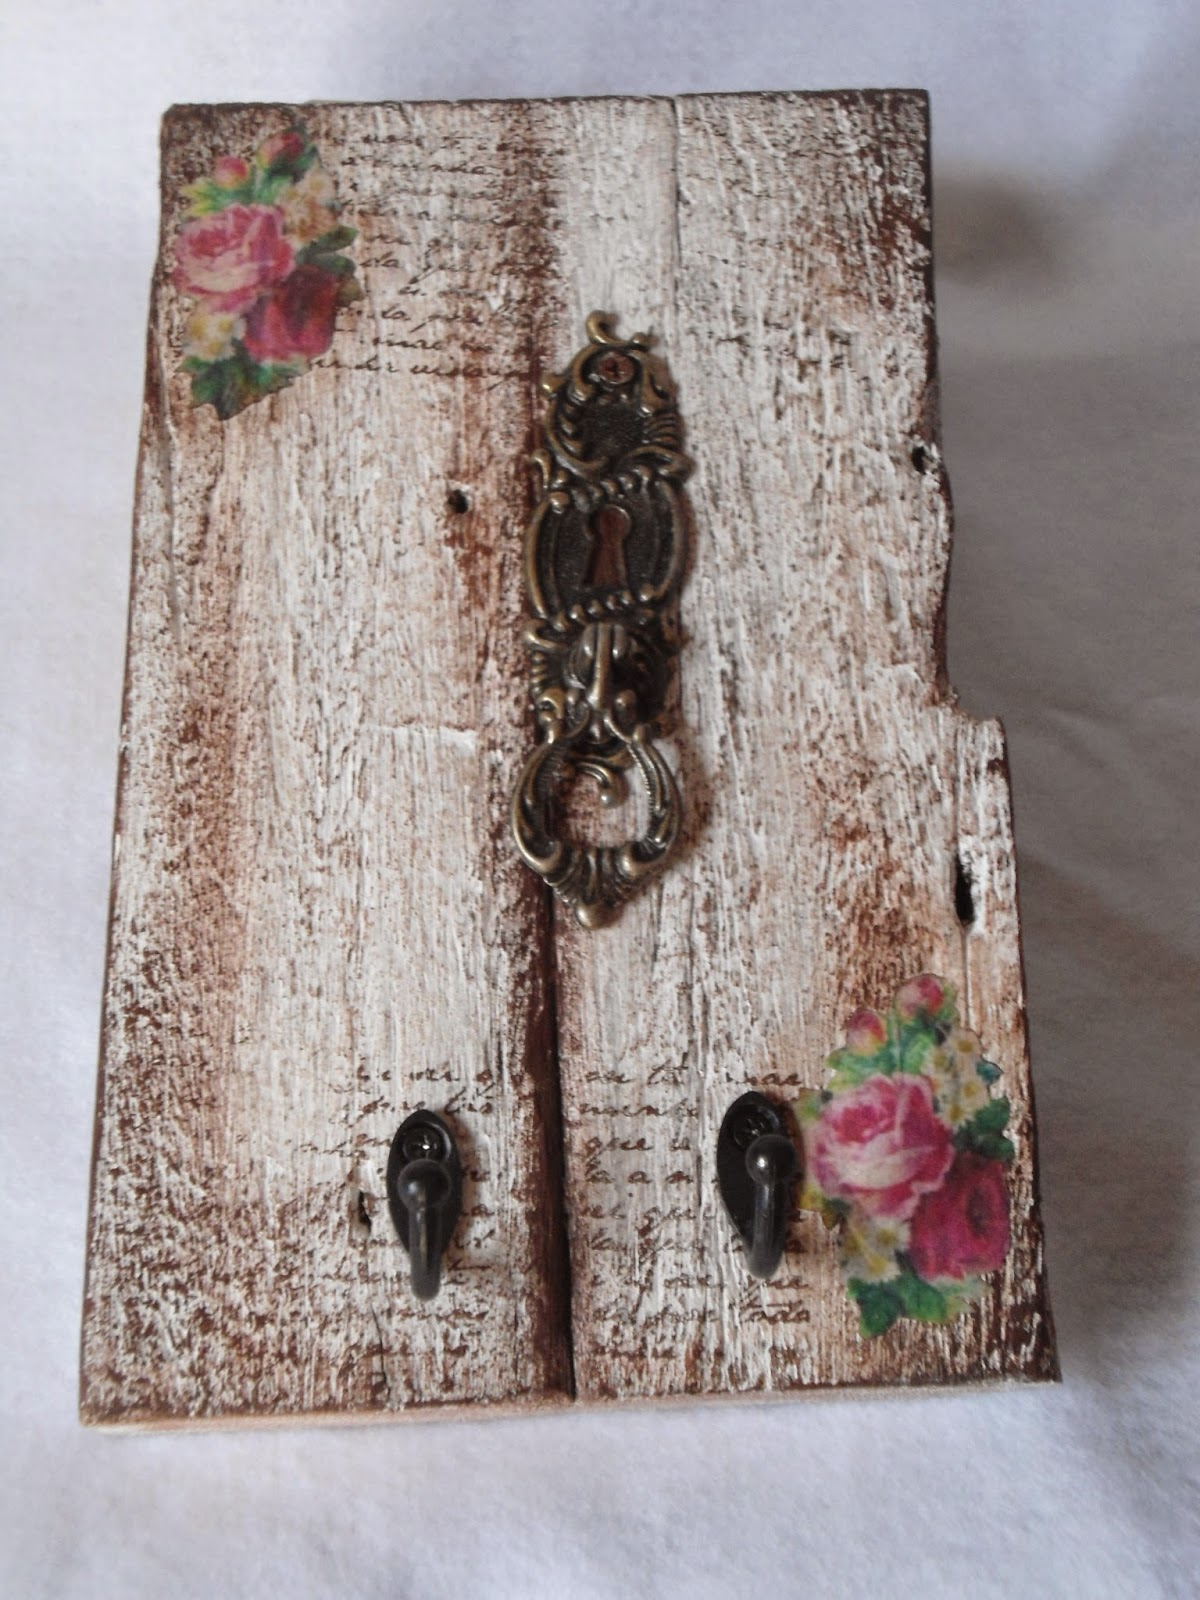 shabby chic crafts on pinterest shabby chic shabby and. Black Bedroom Furniture Sets. Home Design Ideas